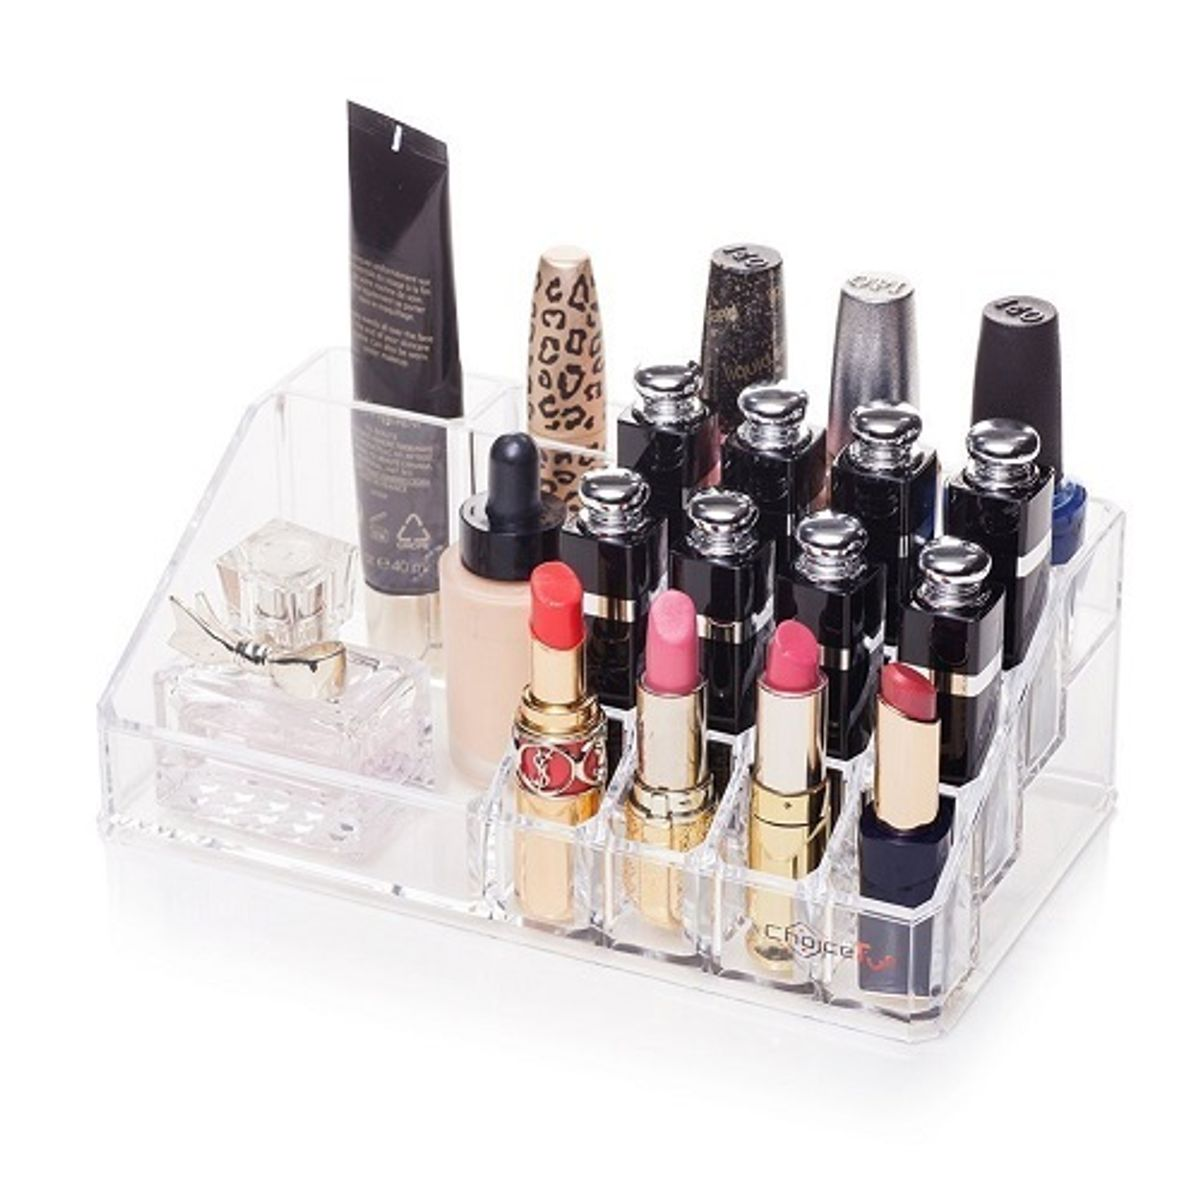 ShopAIS 16 Slot Acrylic Makeup Organizer with Removable Mirror Cosmetic Organizers 16 Slot with Mirror